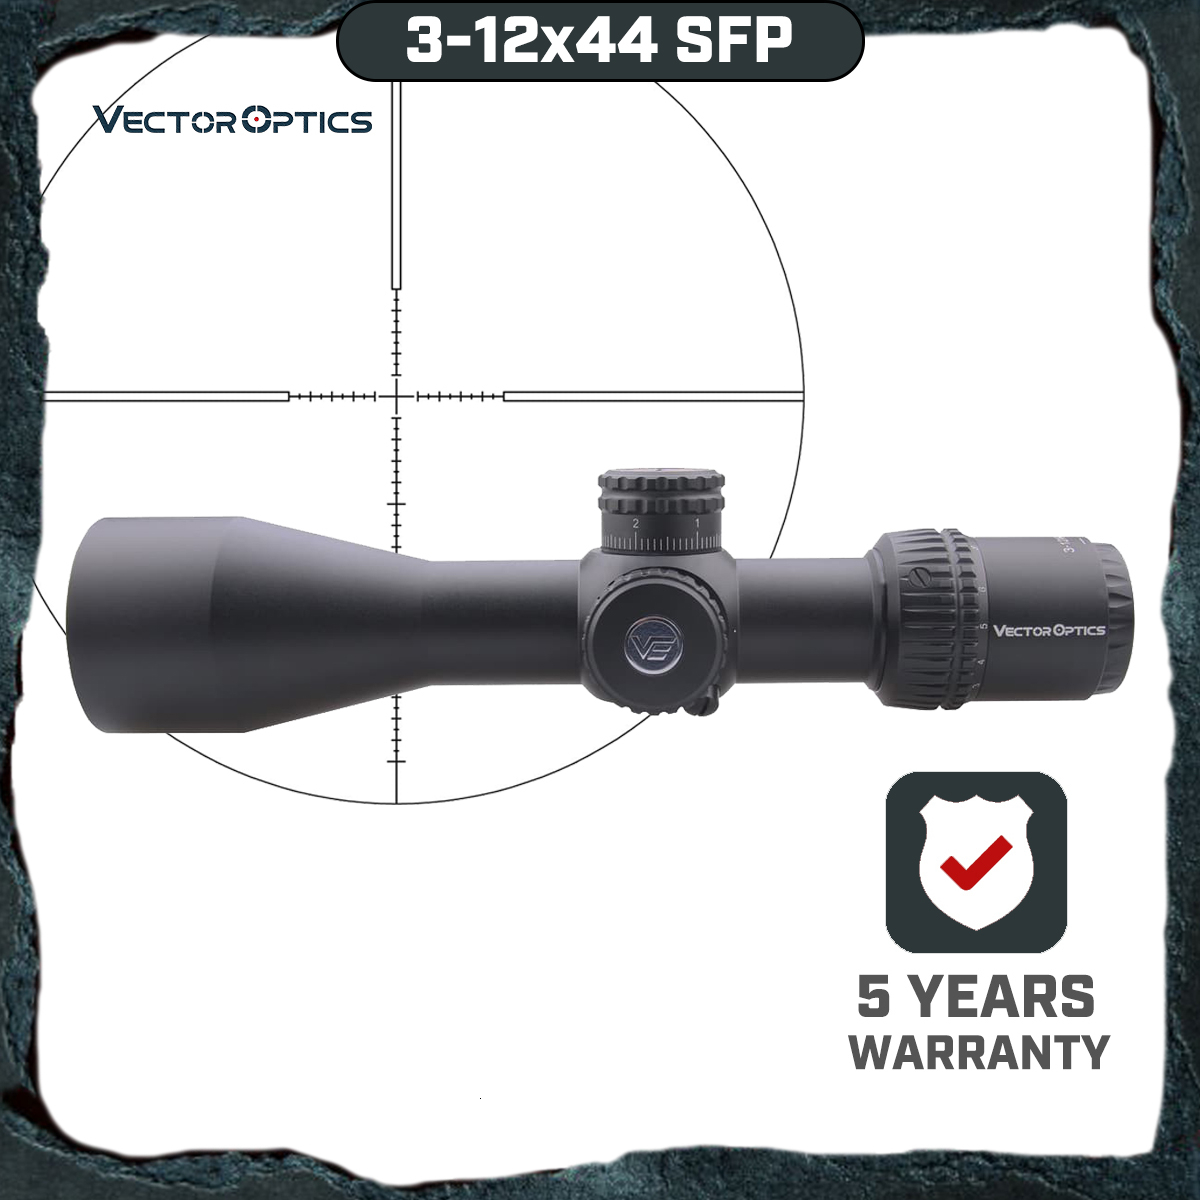 Vector Optics Veyron SFP 3-12x44 Riflescope Ultra Compact Air Rifle Scope Second Focal Plane Air Gun 1/10 MIL AR15 .223 7.62 image